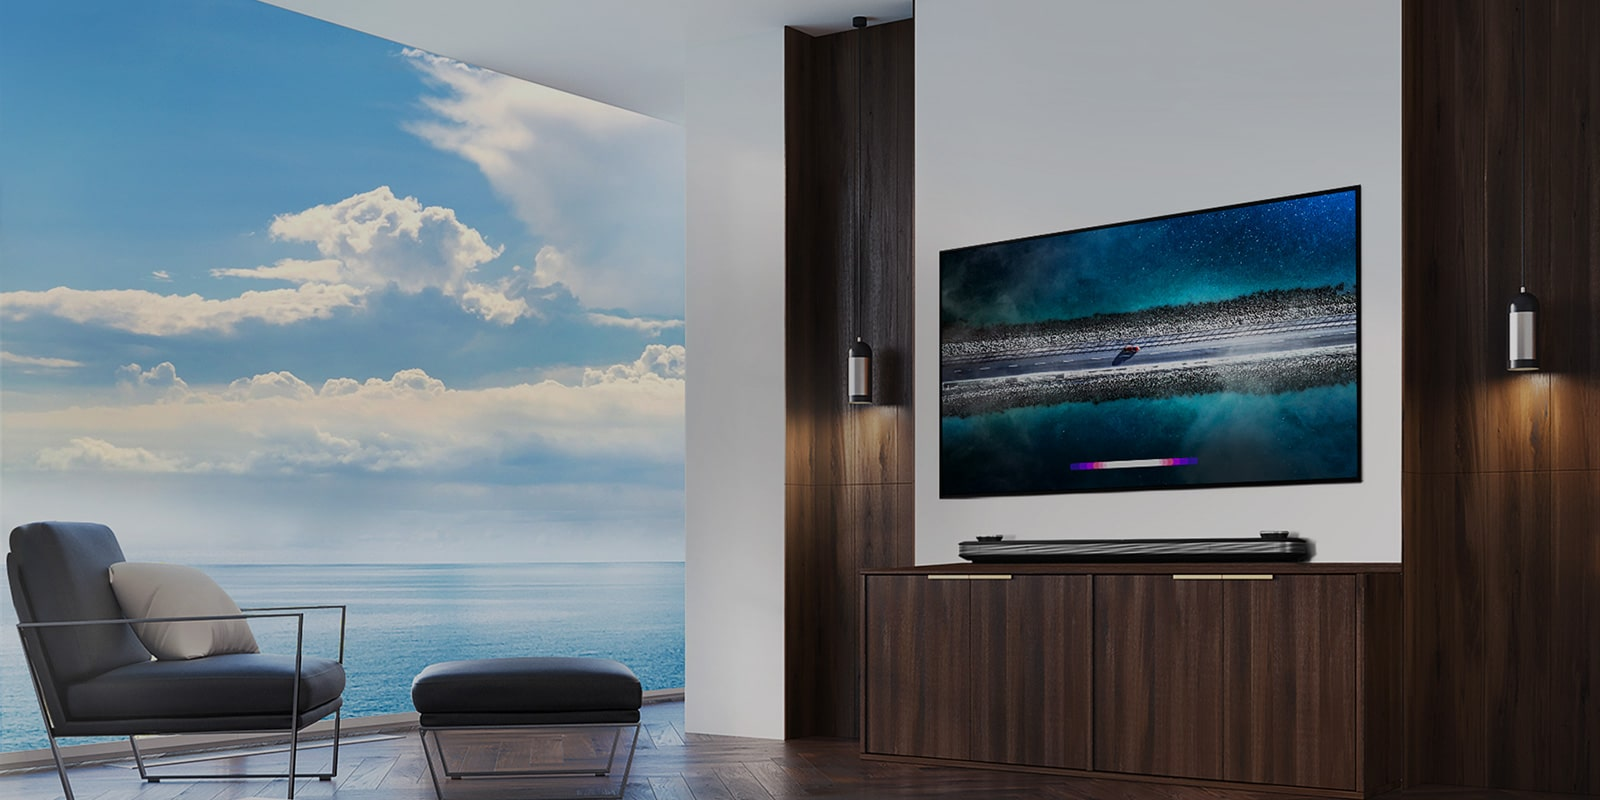 LG SIGNATURE OLED TV W9 is hung on the wall and a counch is laid right in front of tv with the blue sky over the window.